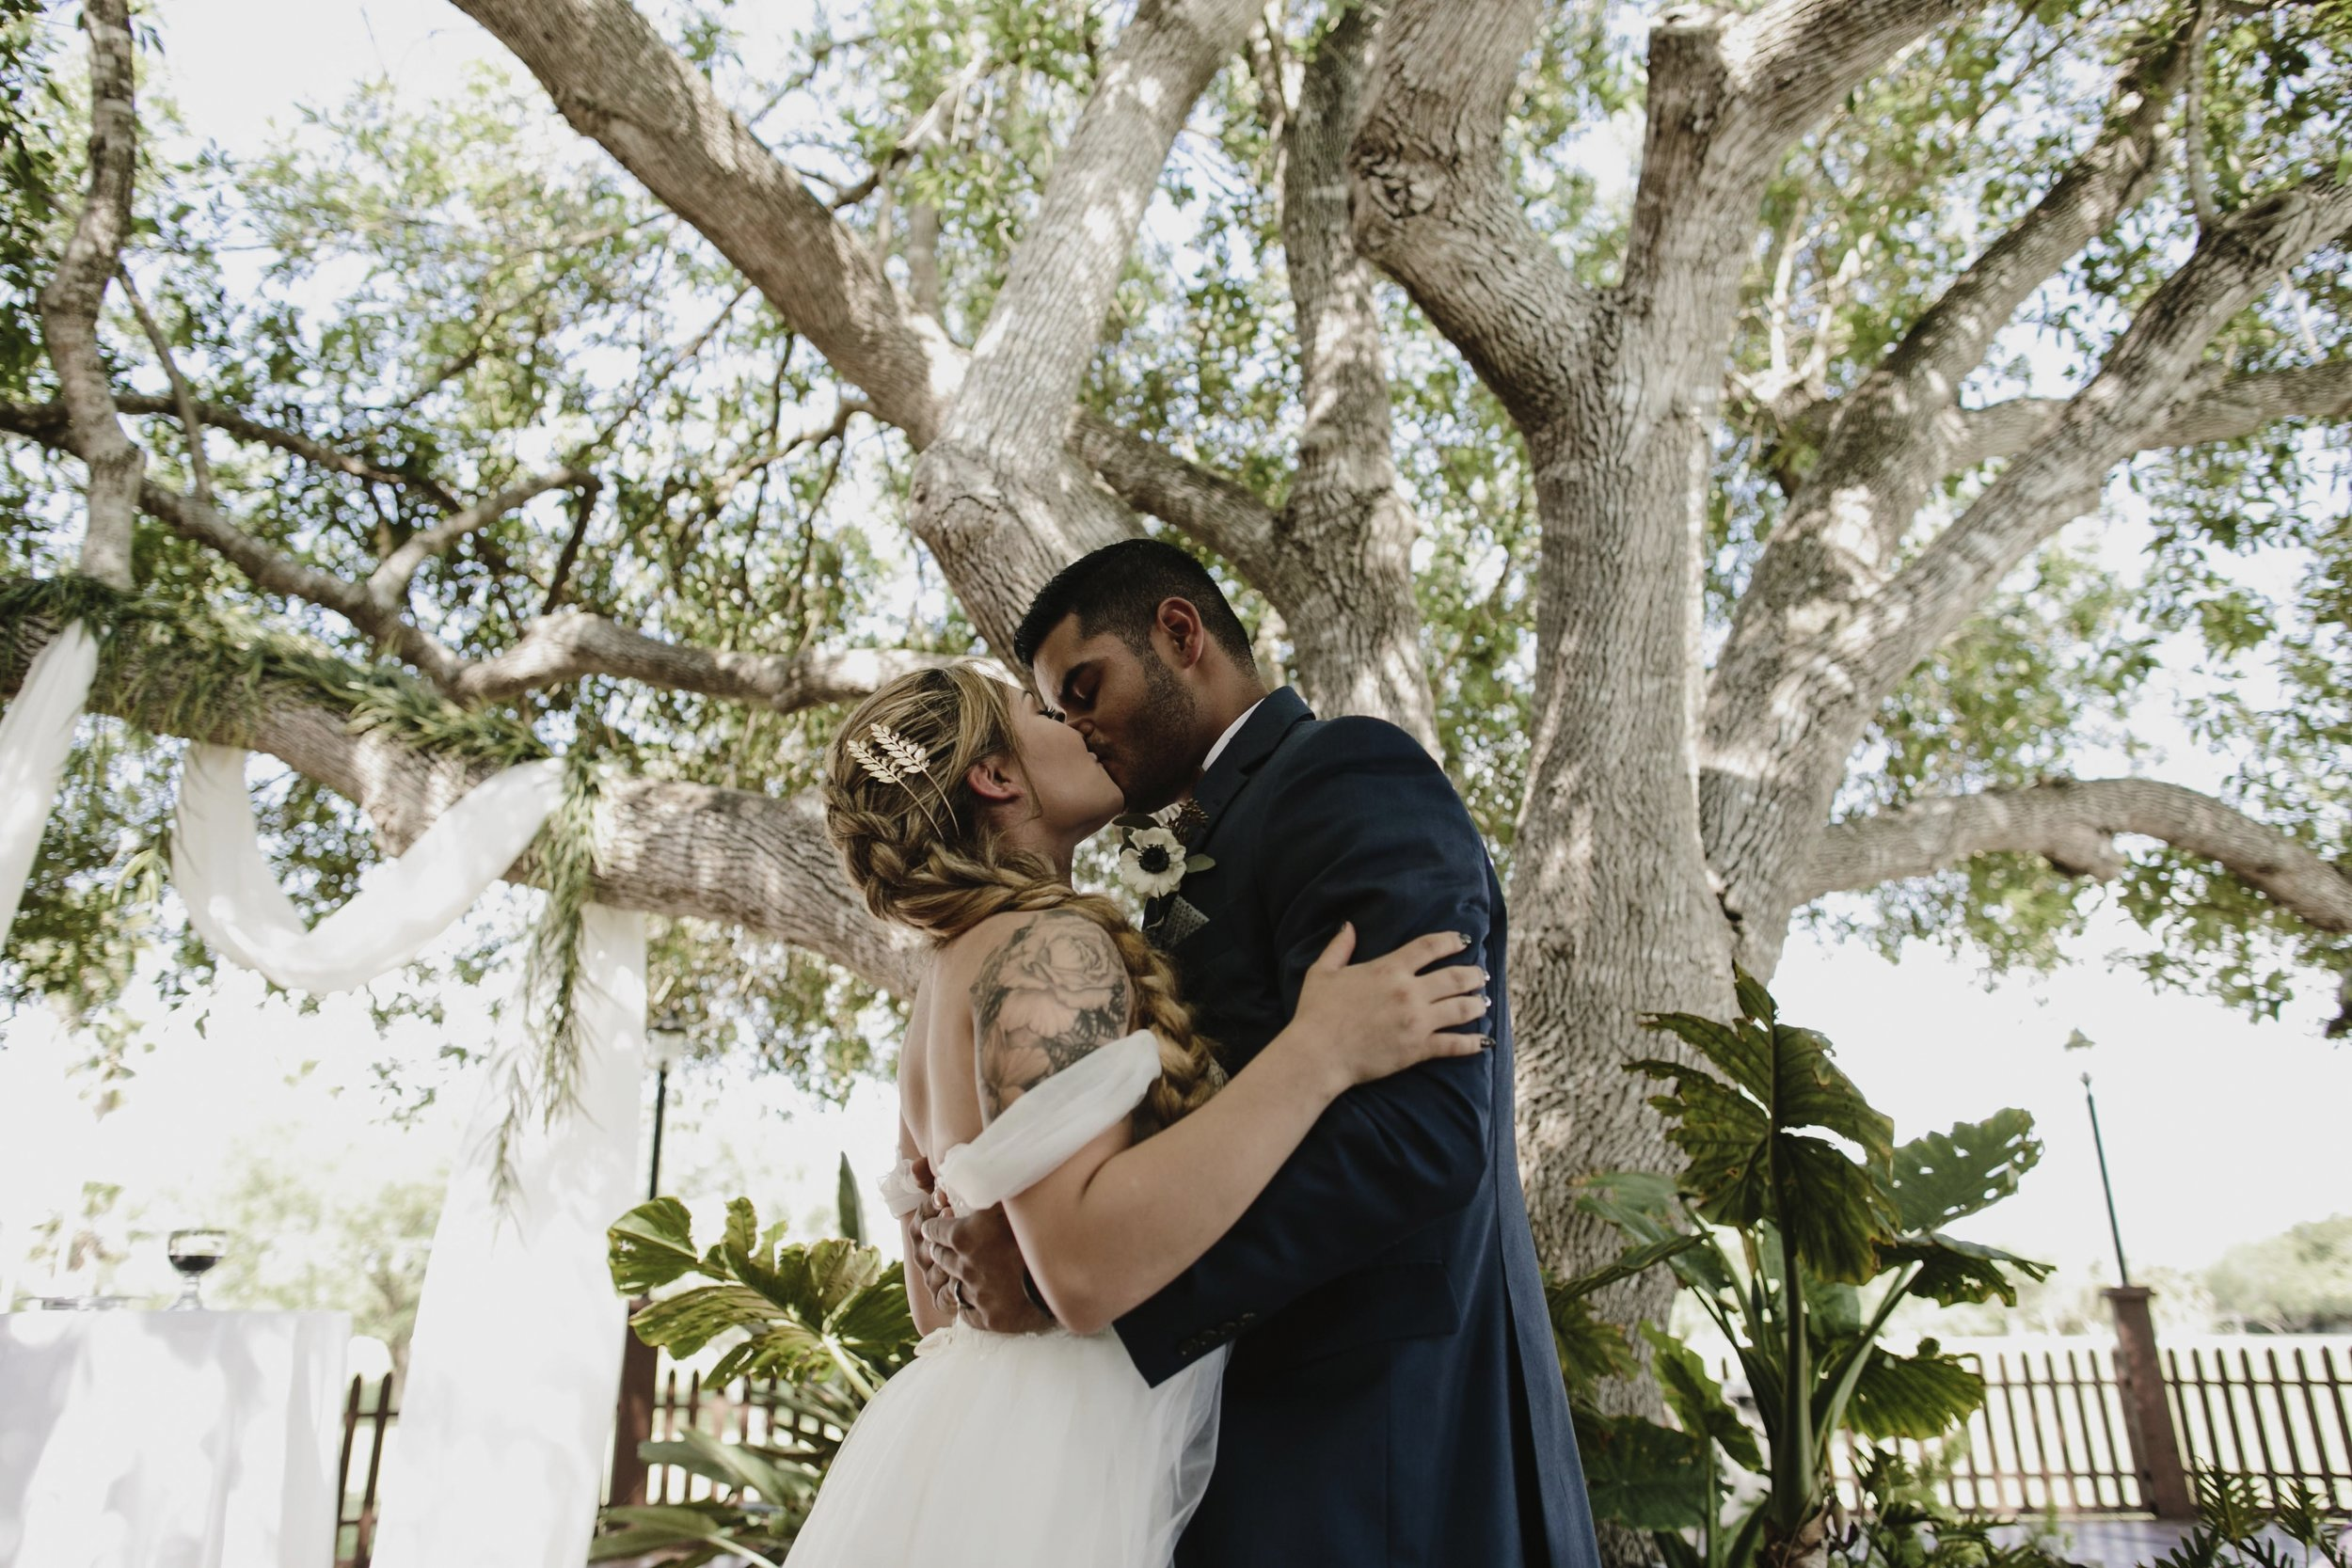 alfonso_flores_destination_wedding_photography_rancho_la_pergola_brownsville_texas39.jpg